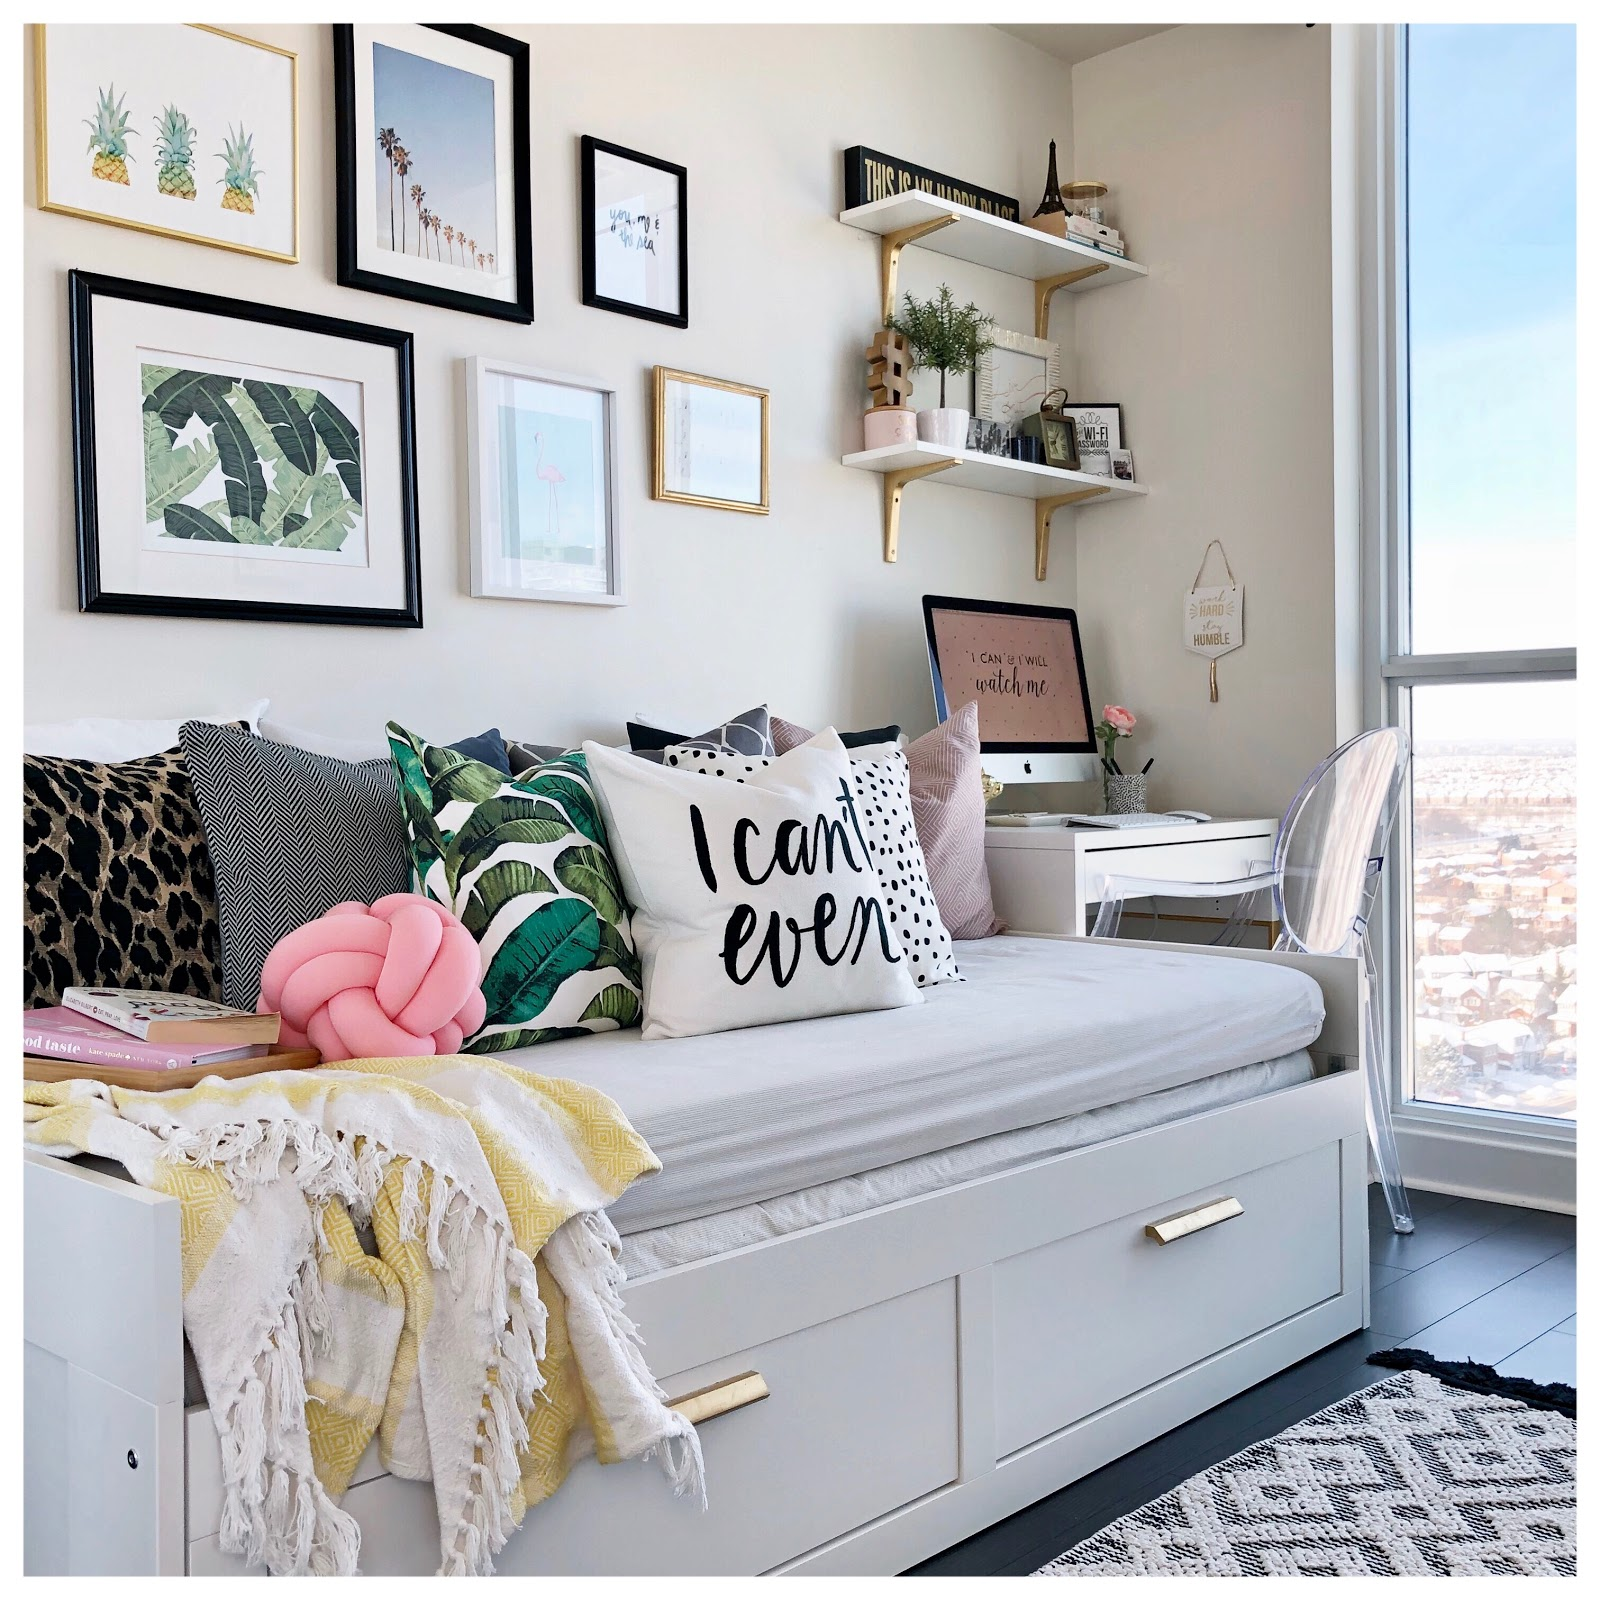 A day bed next to a small desk in a bedroom